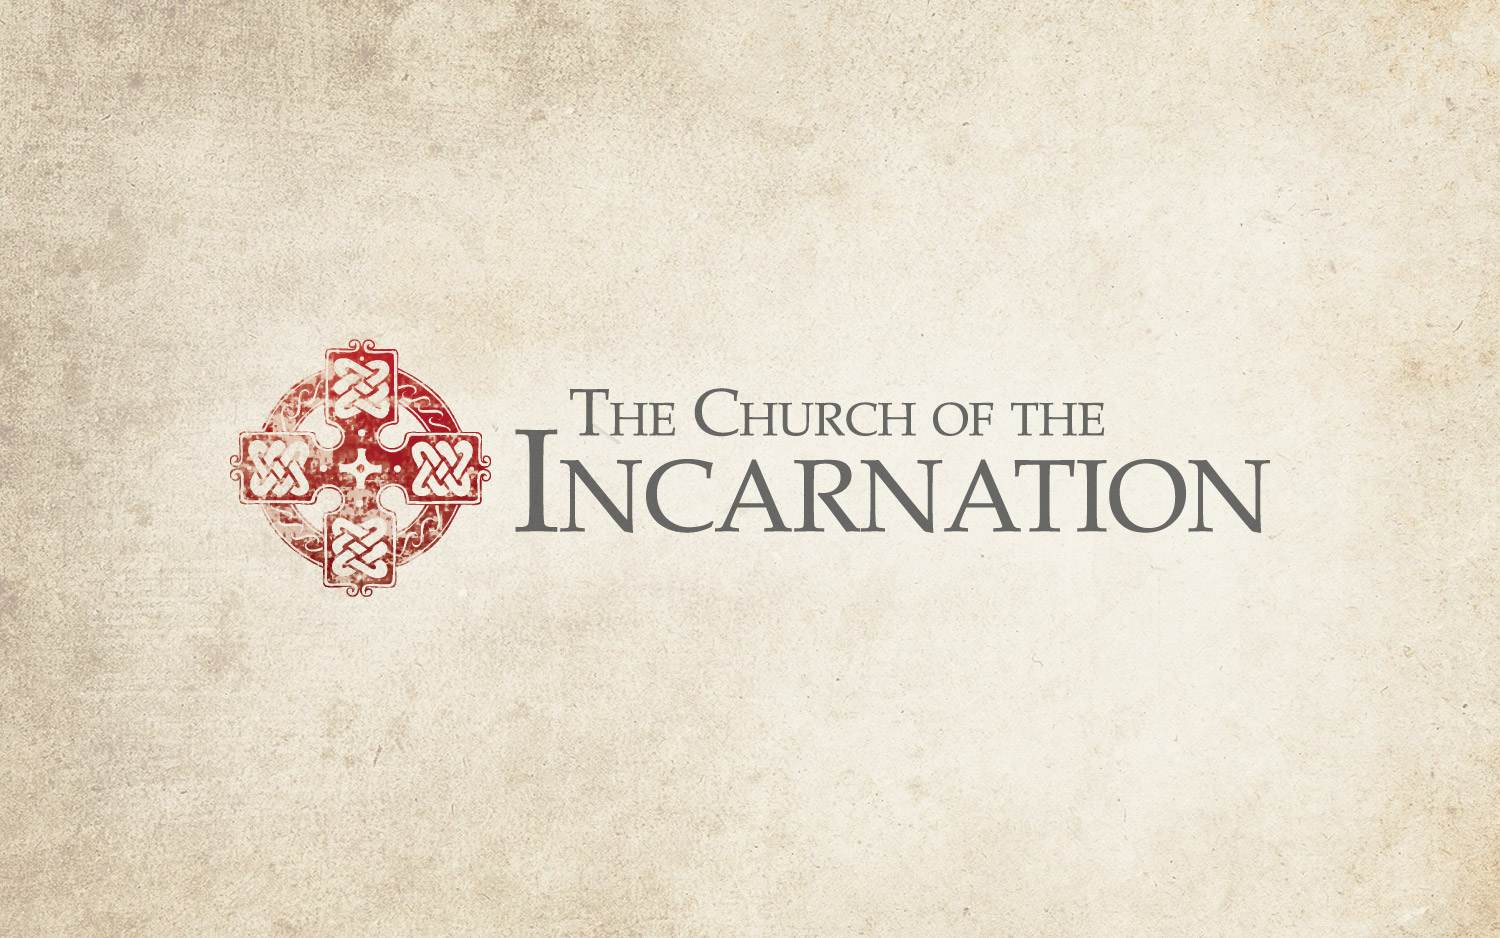 Incarnation-logo3